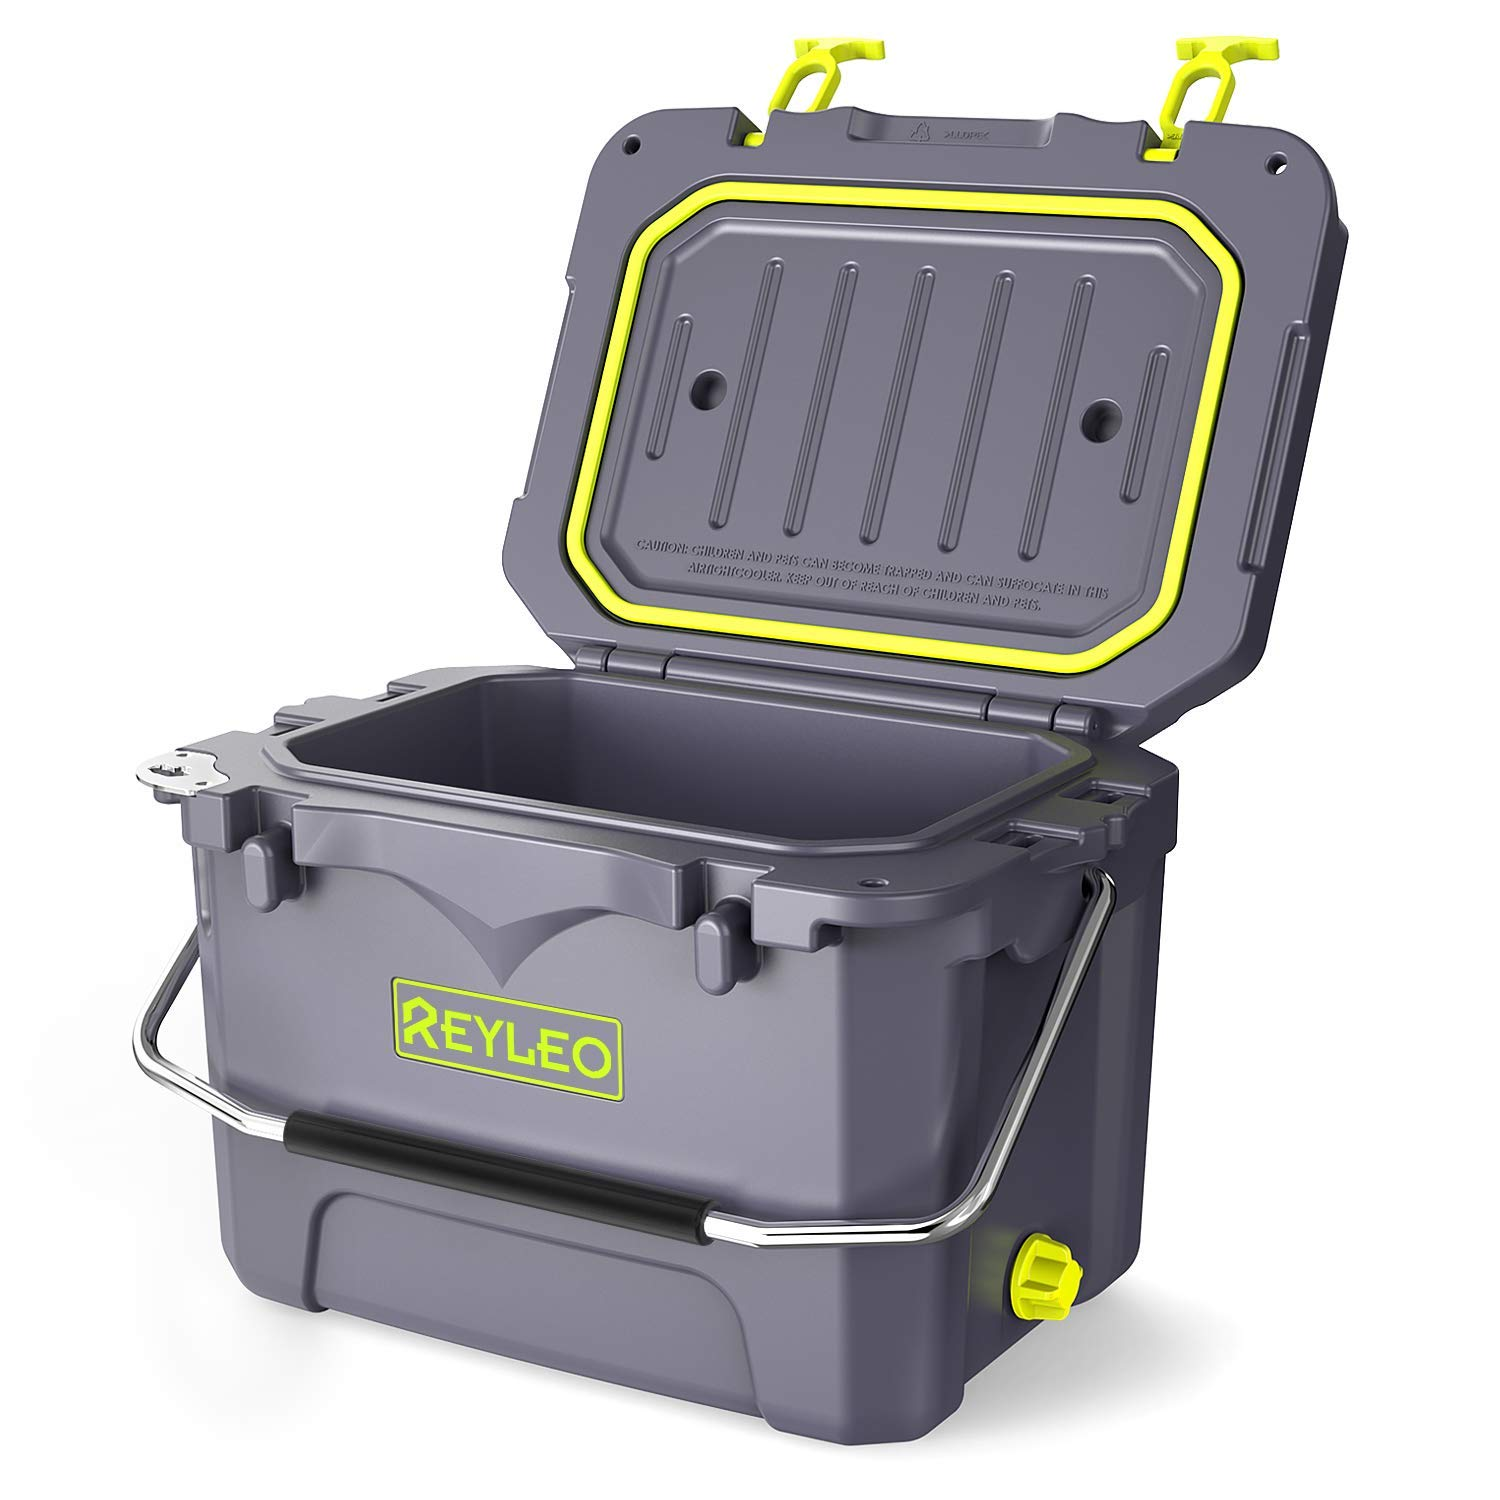 REYLEO Cooler, 21 Quart 20L Pro Guide Series Cooler, 30-Can Capacity, Up to 3-Day Ice Retention, Heavy Duty Ice Chest Built-in Bottle Opener for Camping, Fishing,Picnic and Extreme Adventure